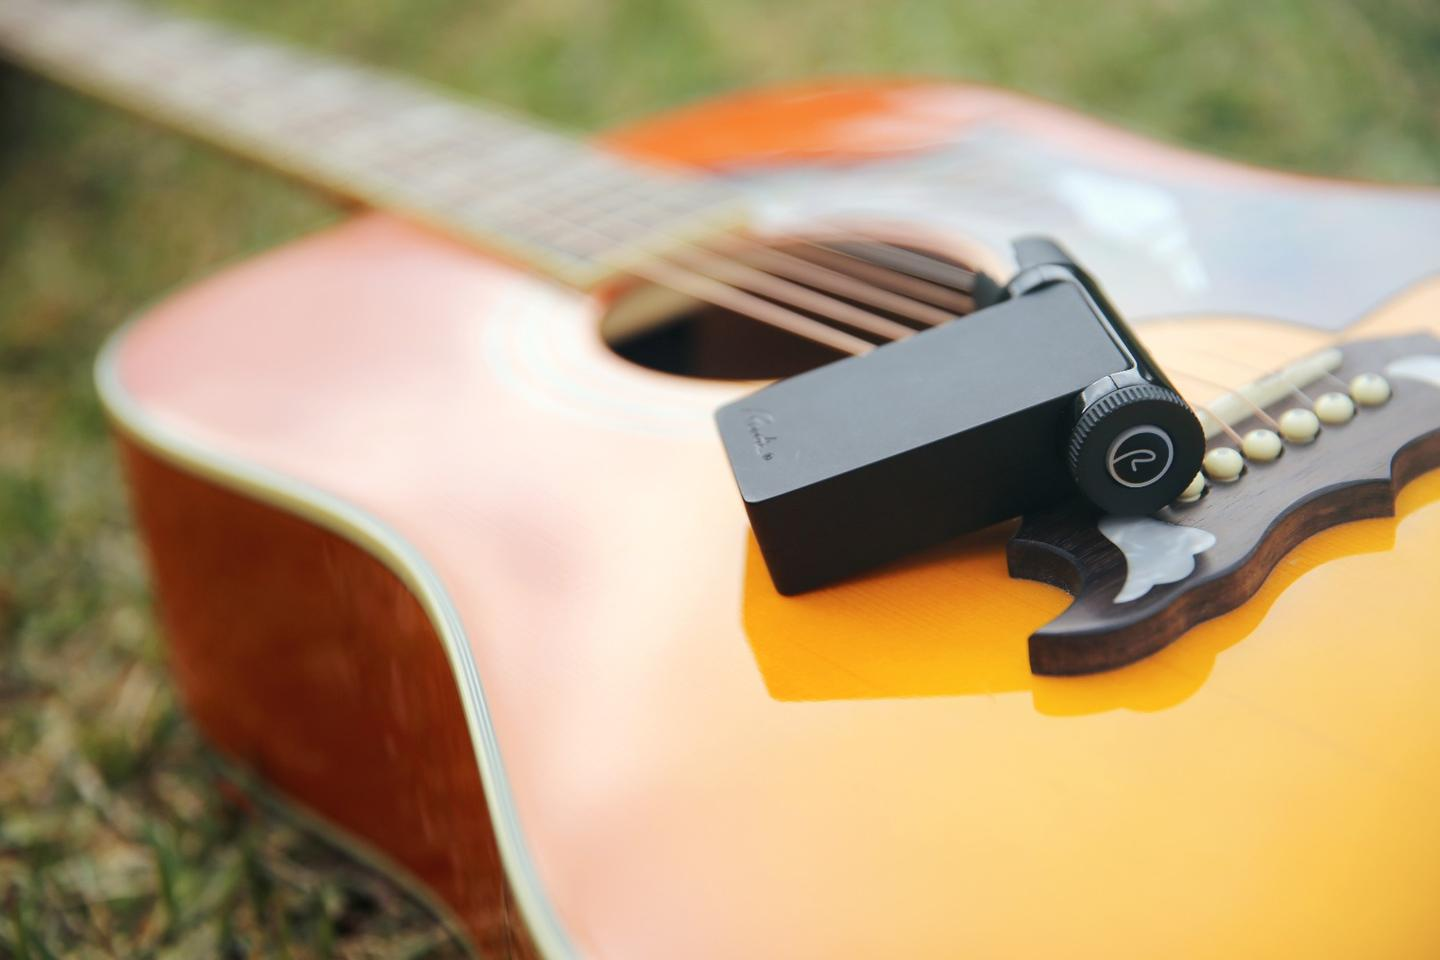 The Roadie 2 can be used to tune electric, acoustic, classical or steel guitars, as well as 7- and 12-string guitars, ukuleles, mandolins and banjos